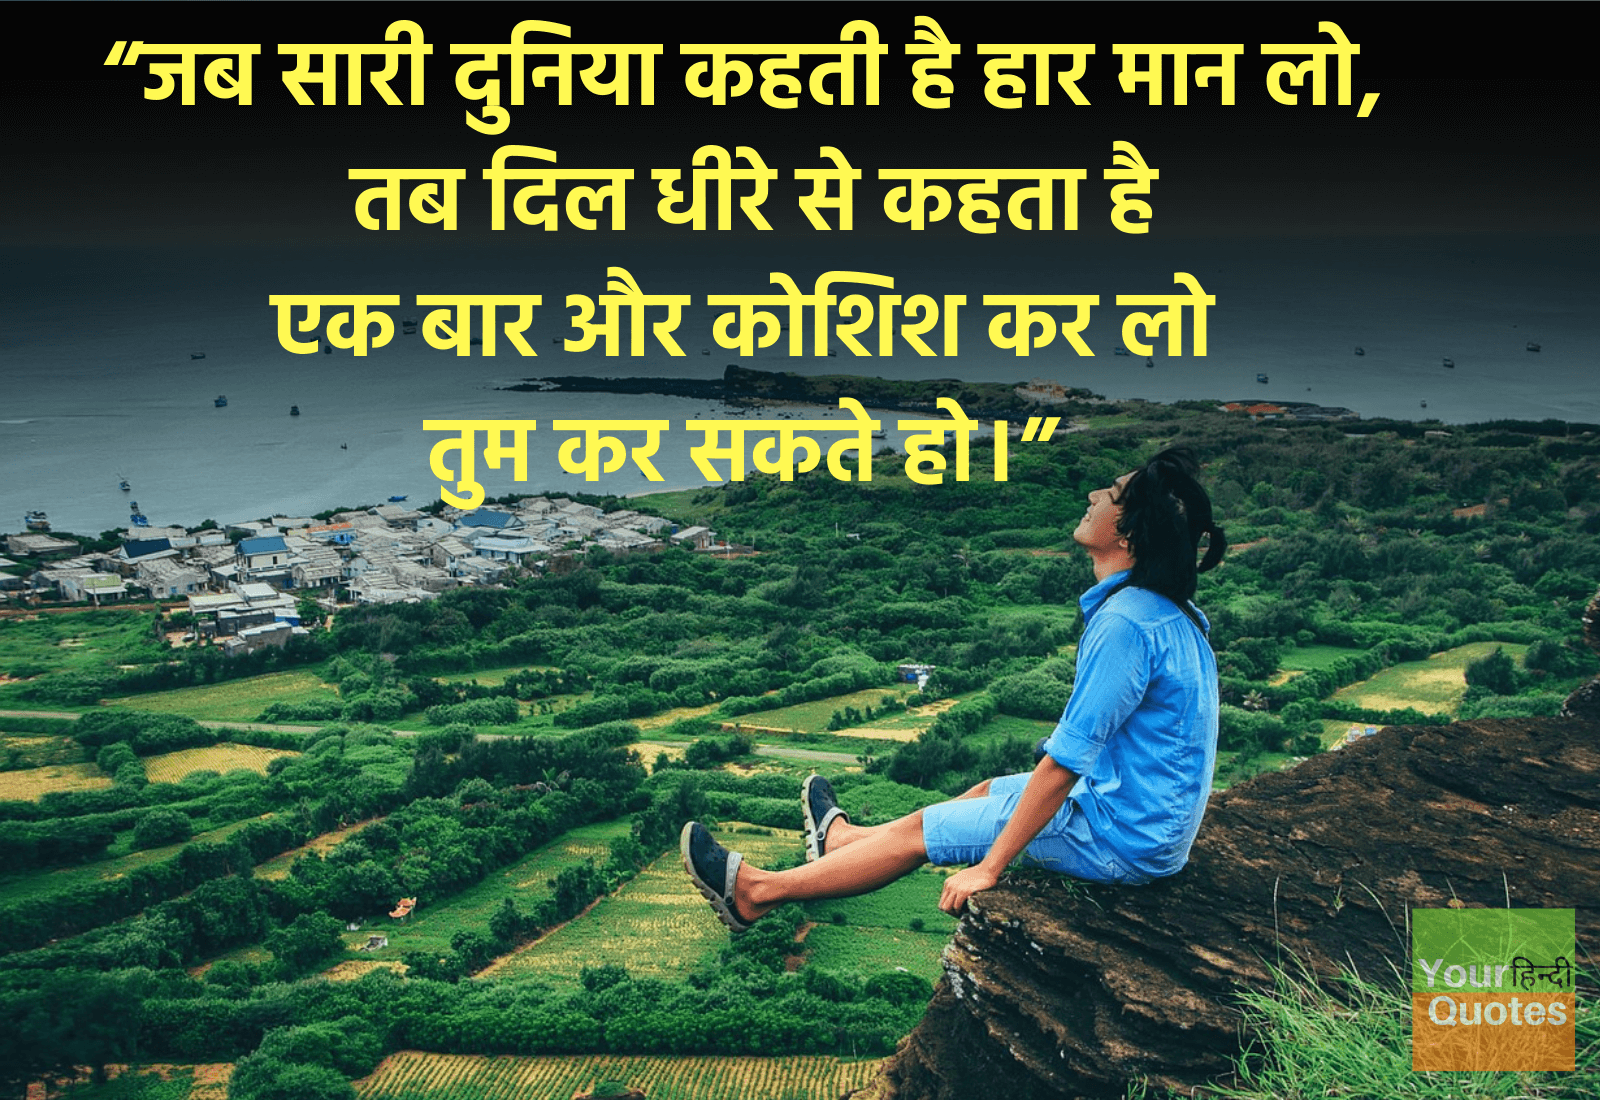 Hindi Motivational Quotes Images2